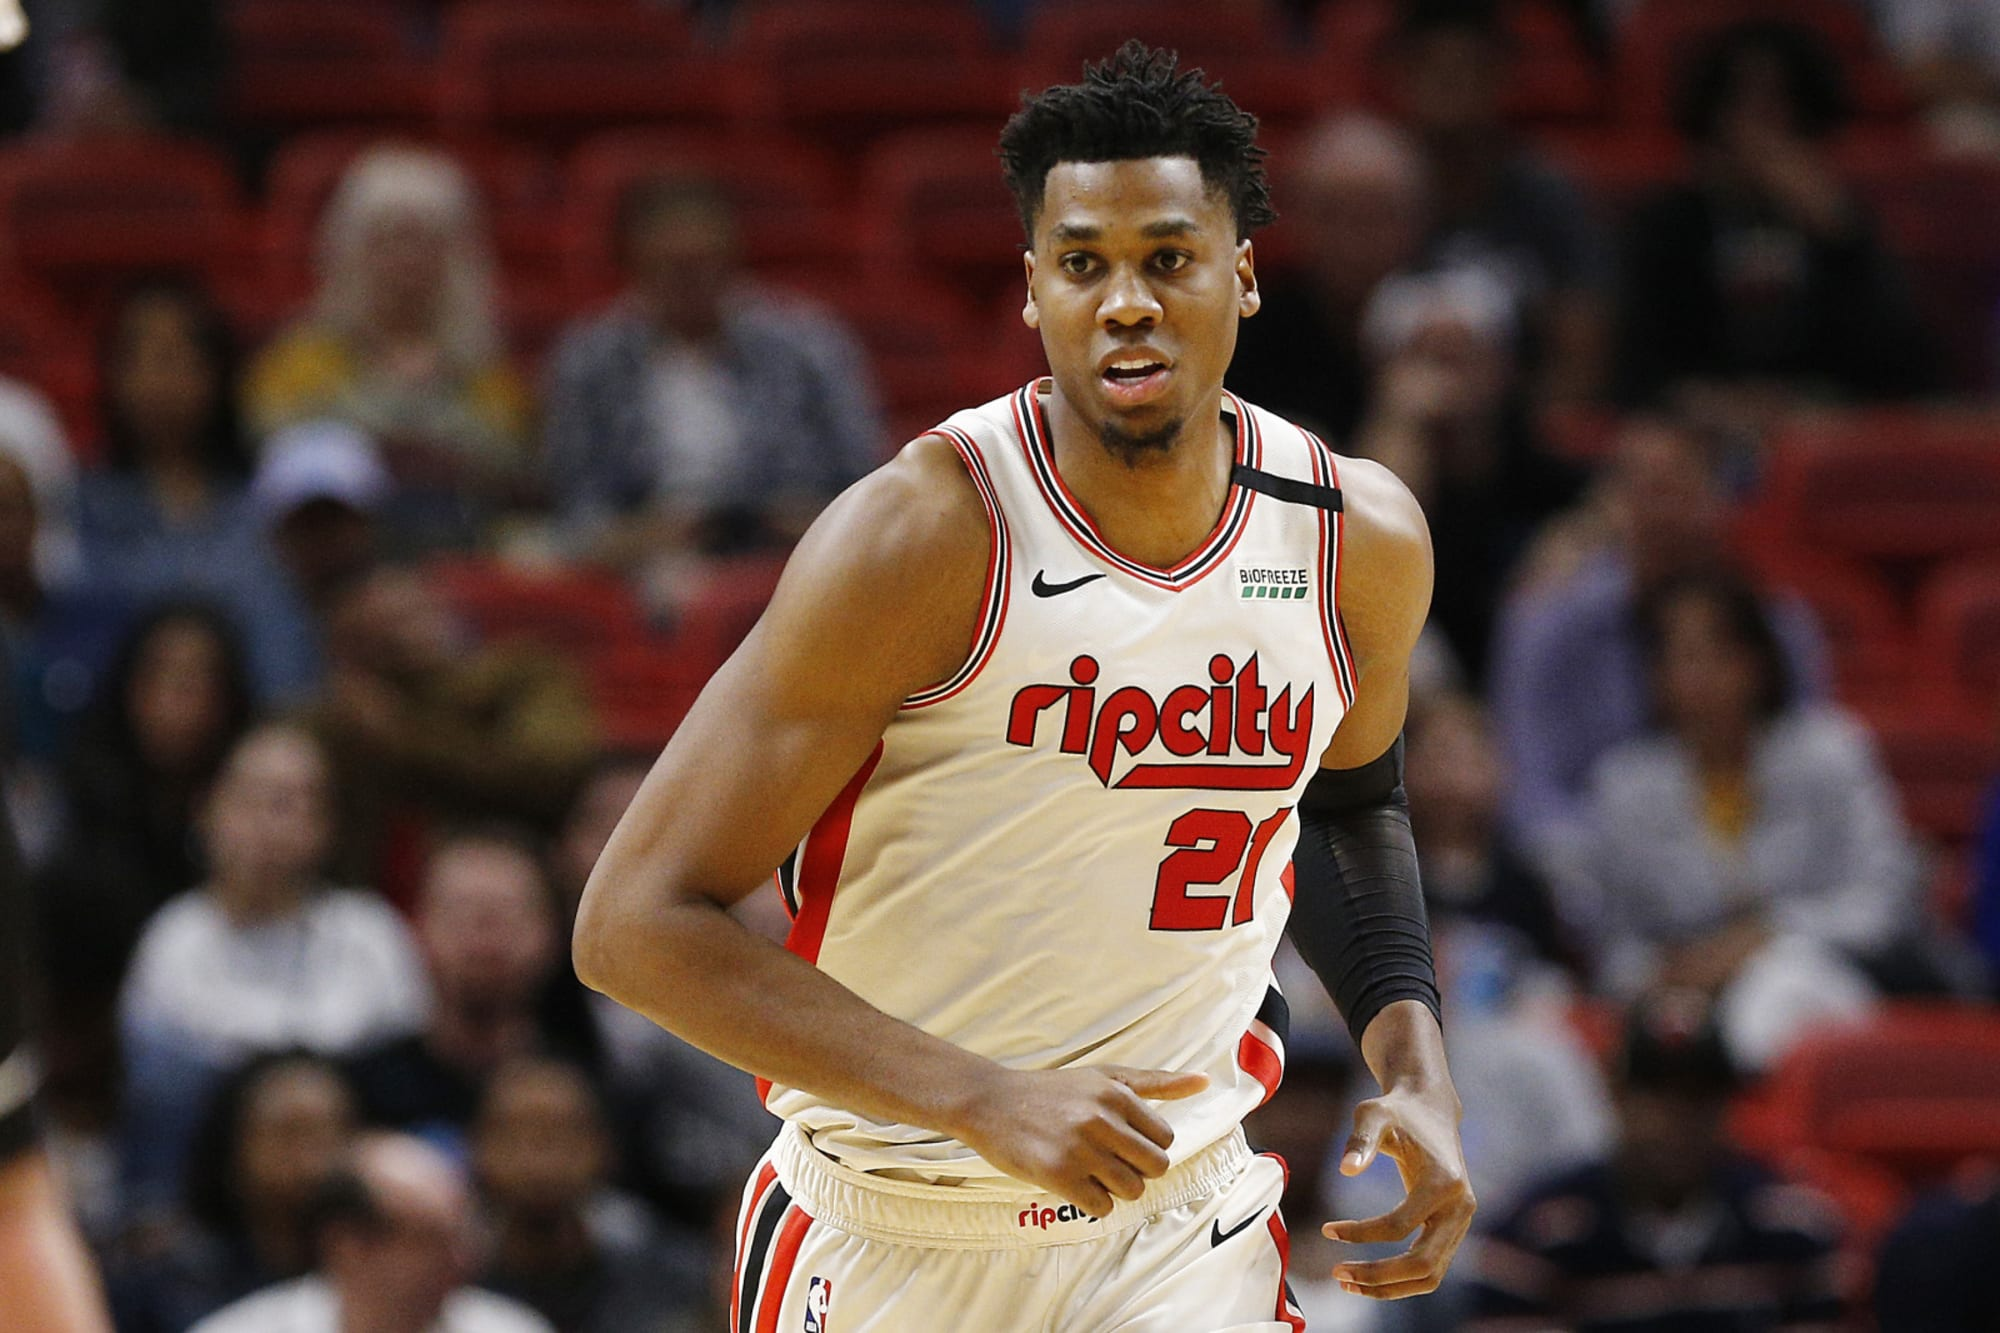 Charlotte Hornets: Hassan Whiteside is a must for playoff run